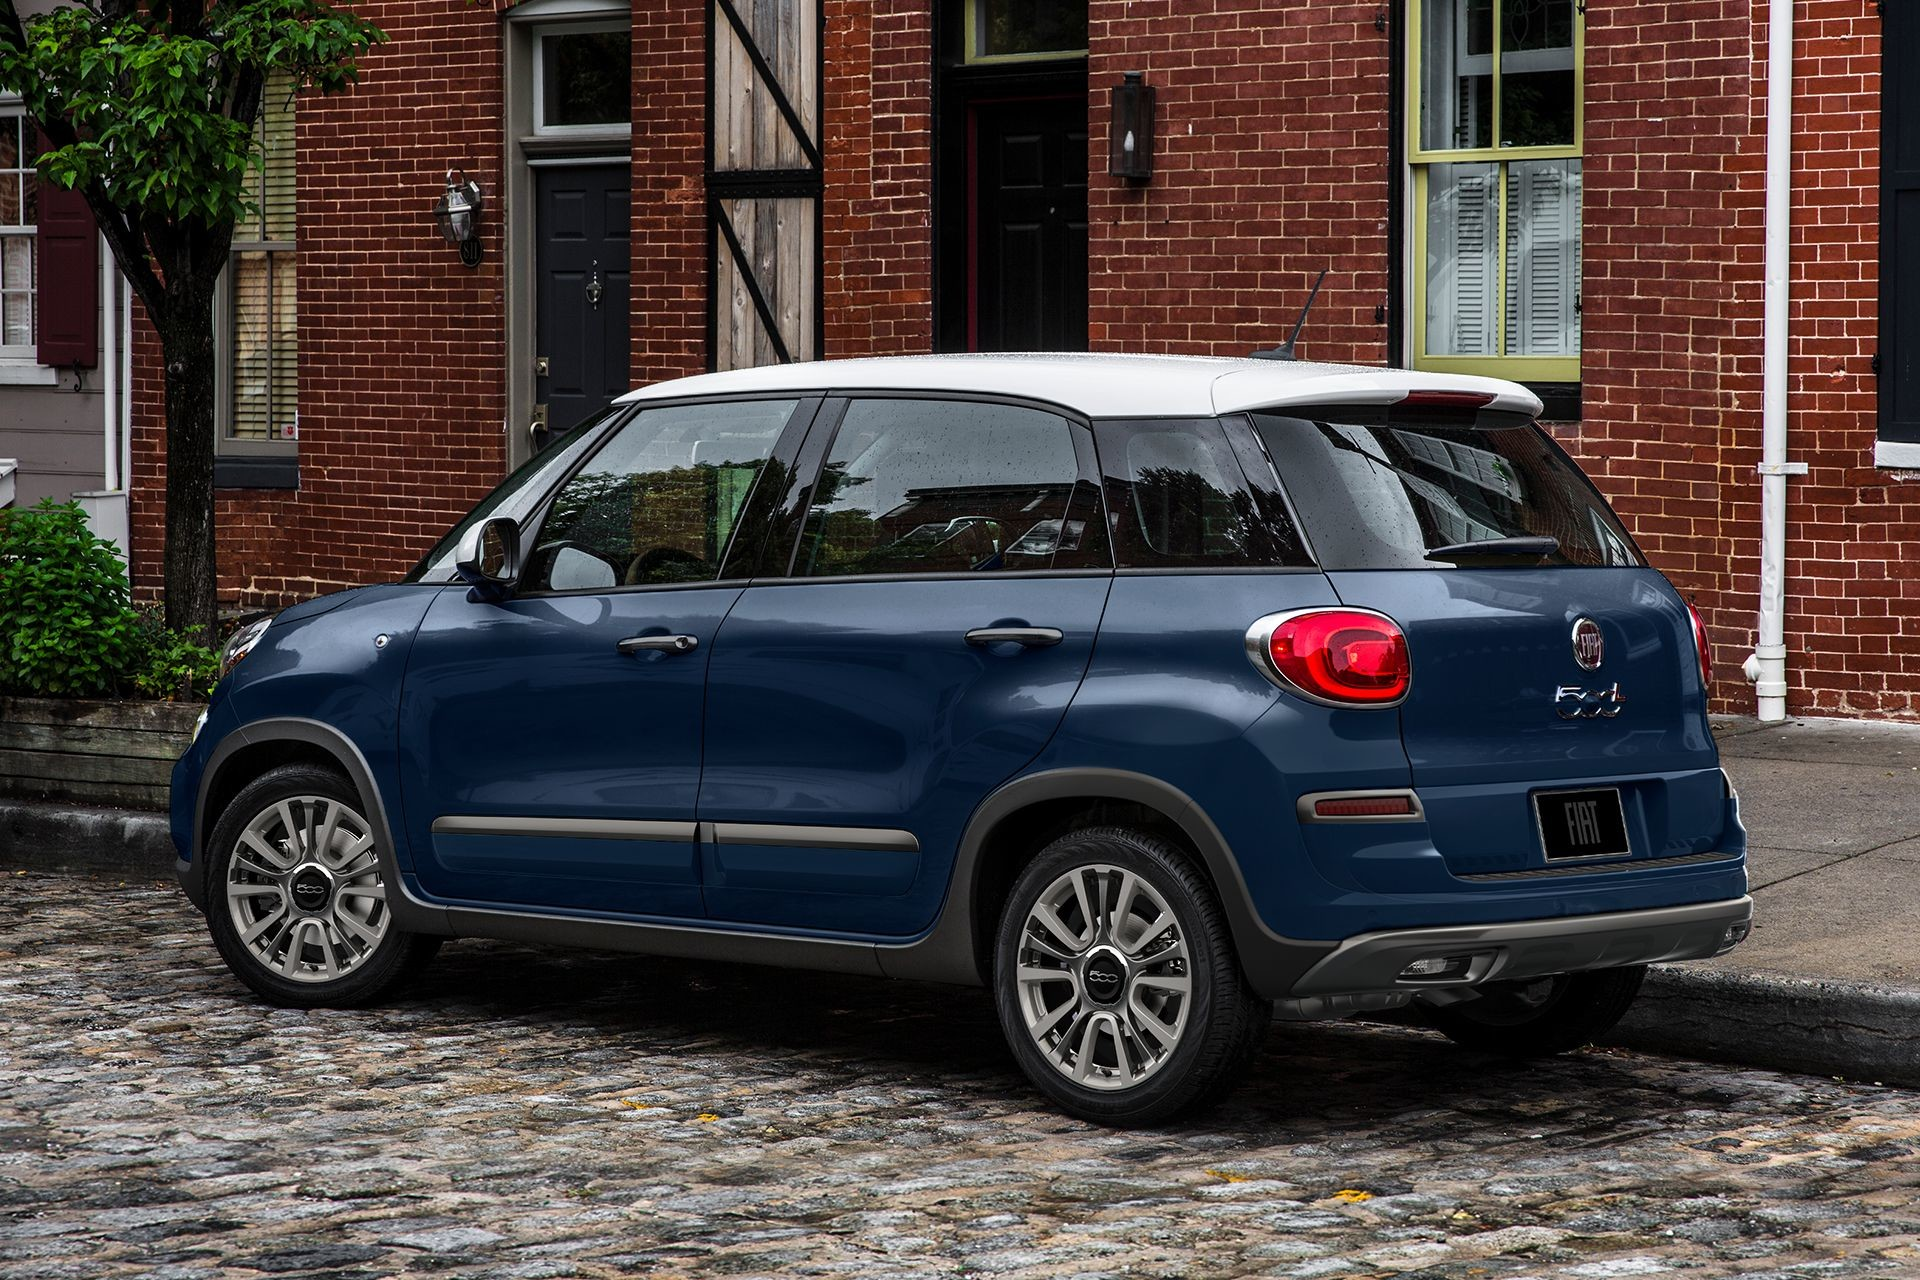 2018 Fiat 500L exterior side view in blue with coloured roof